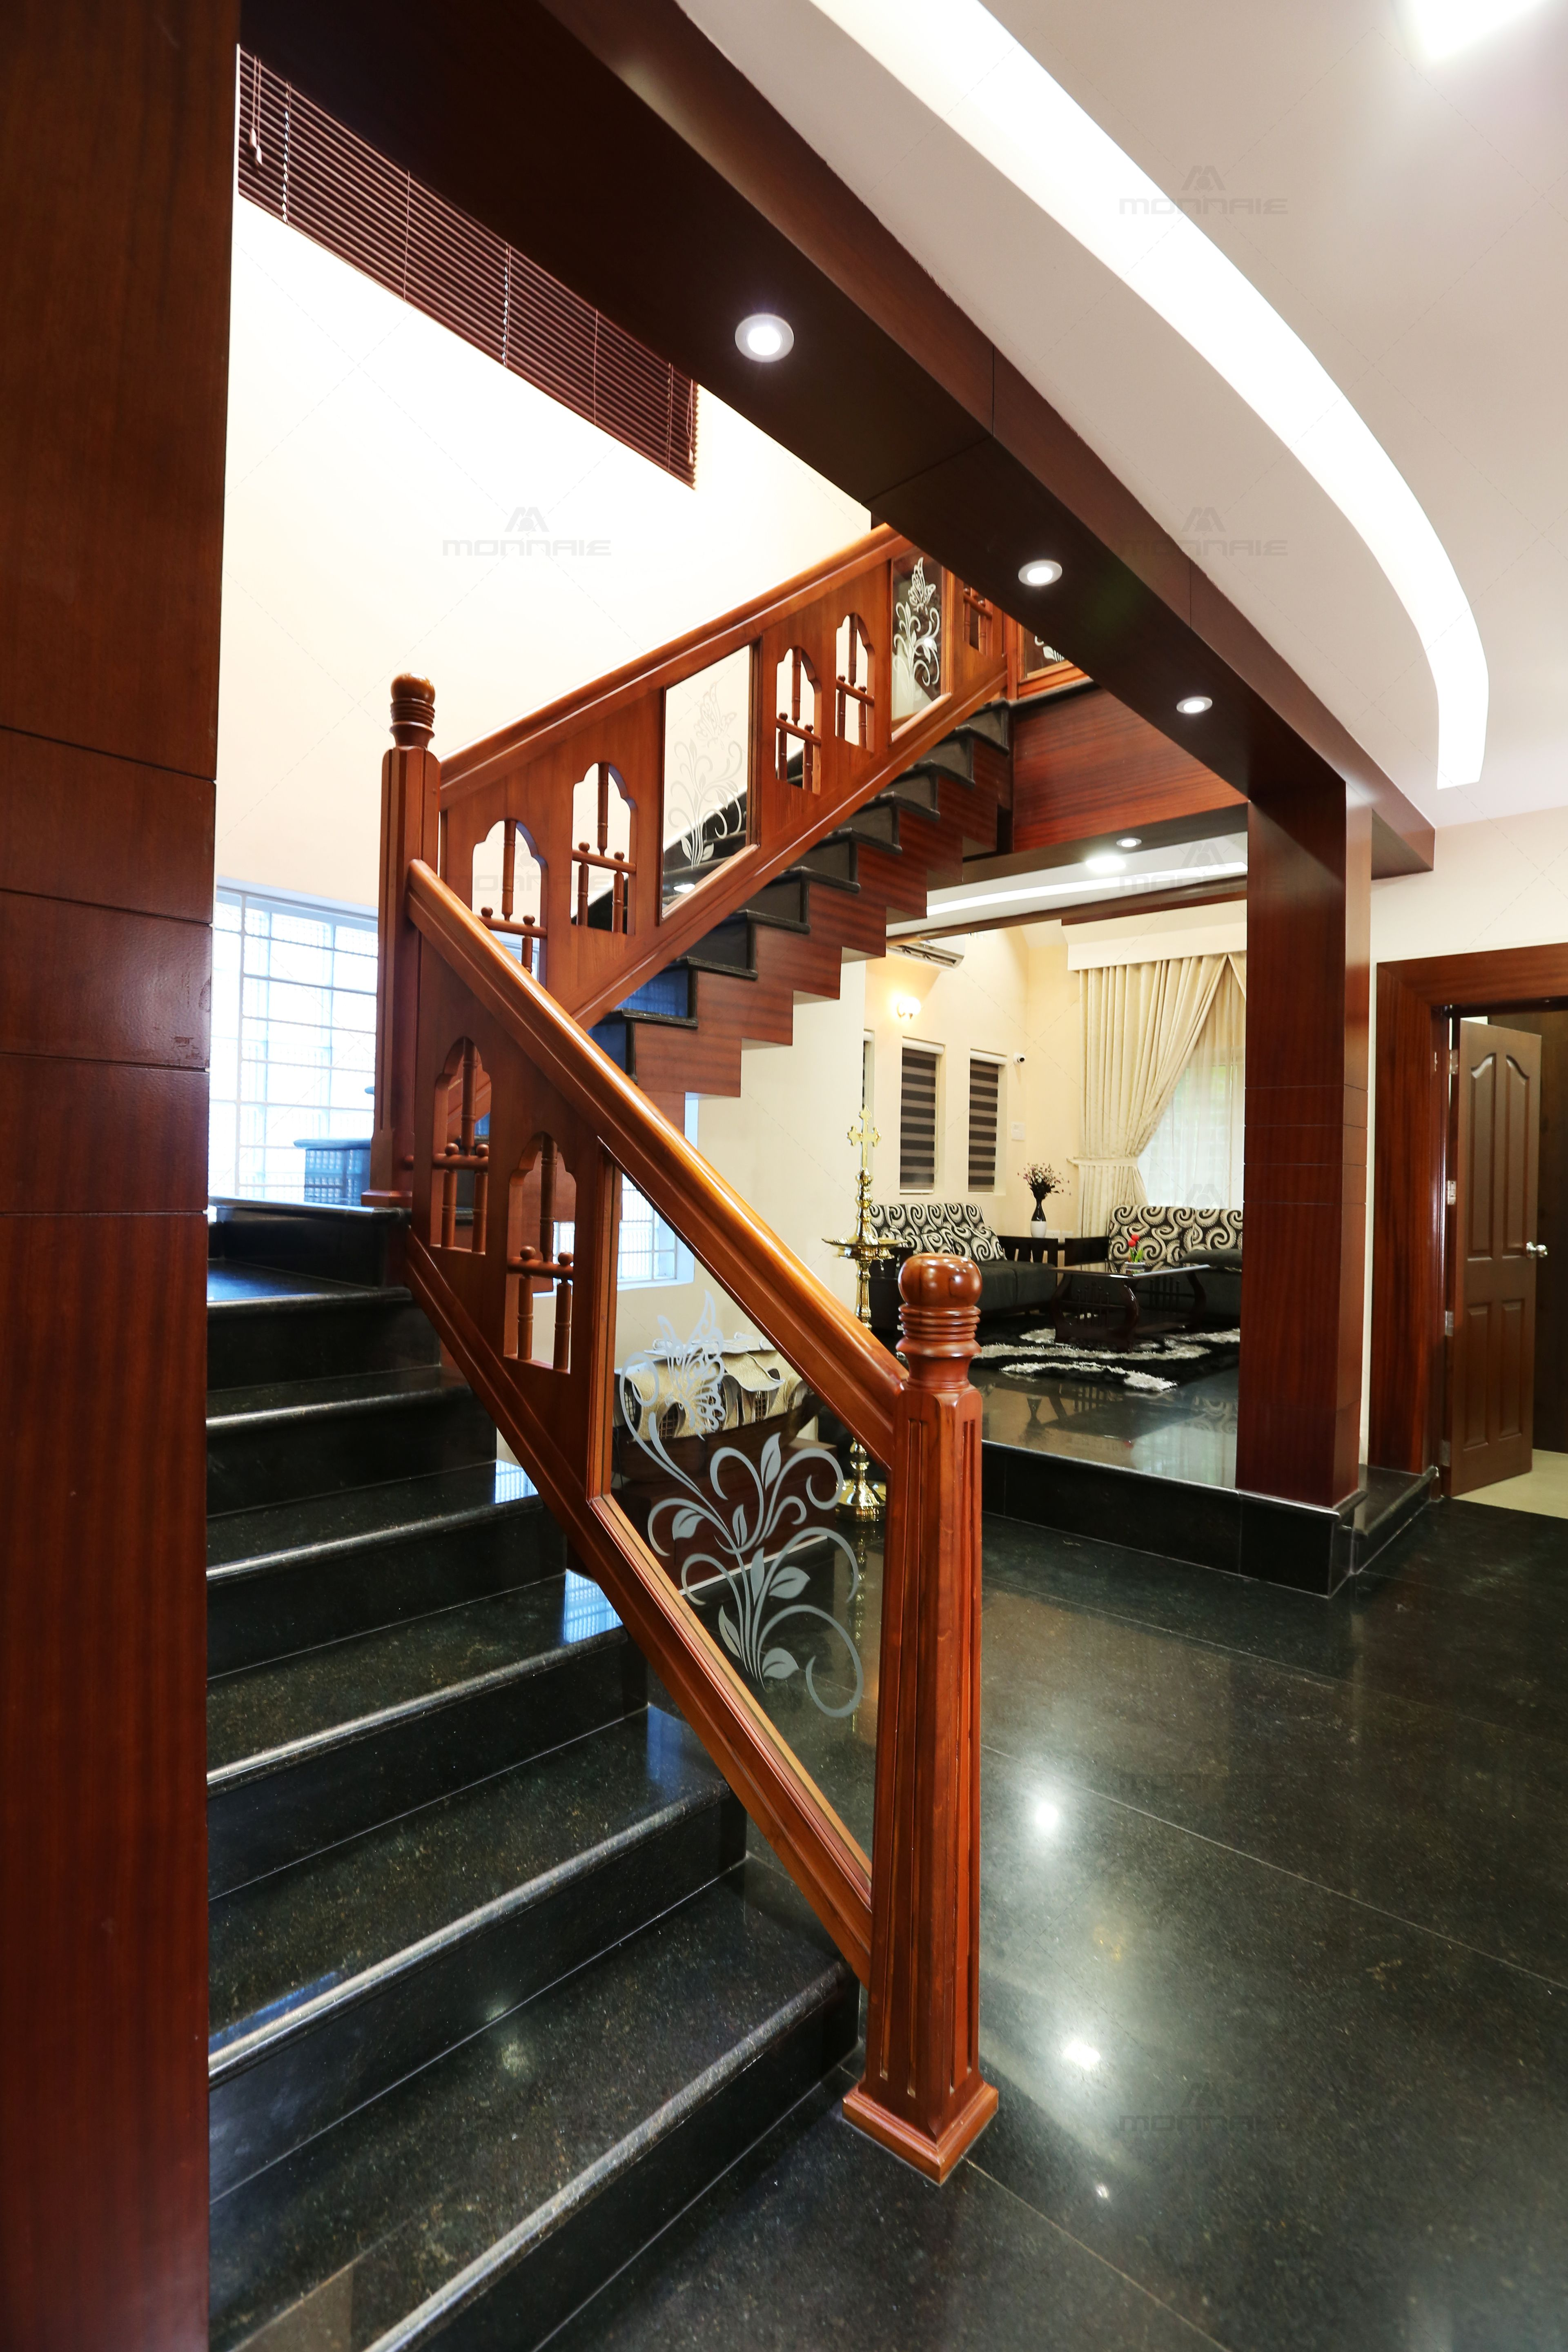 Pin by Sudha on Dream house plans | Stair railing design ...